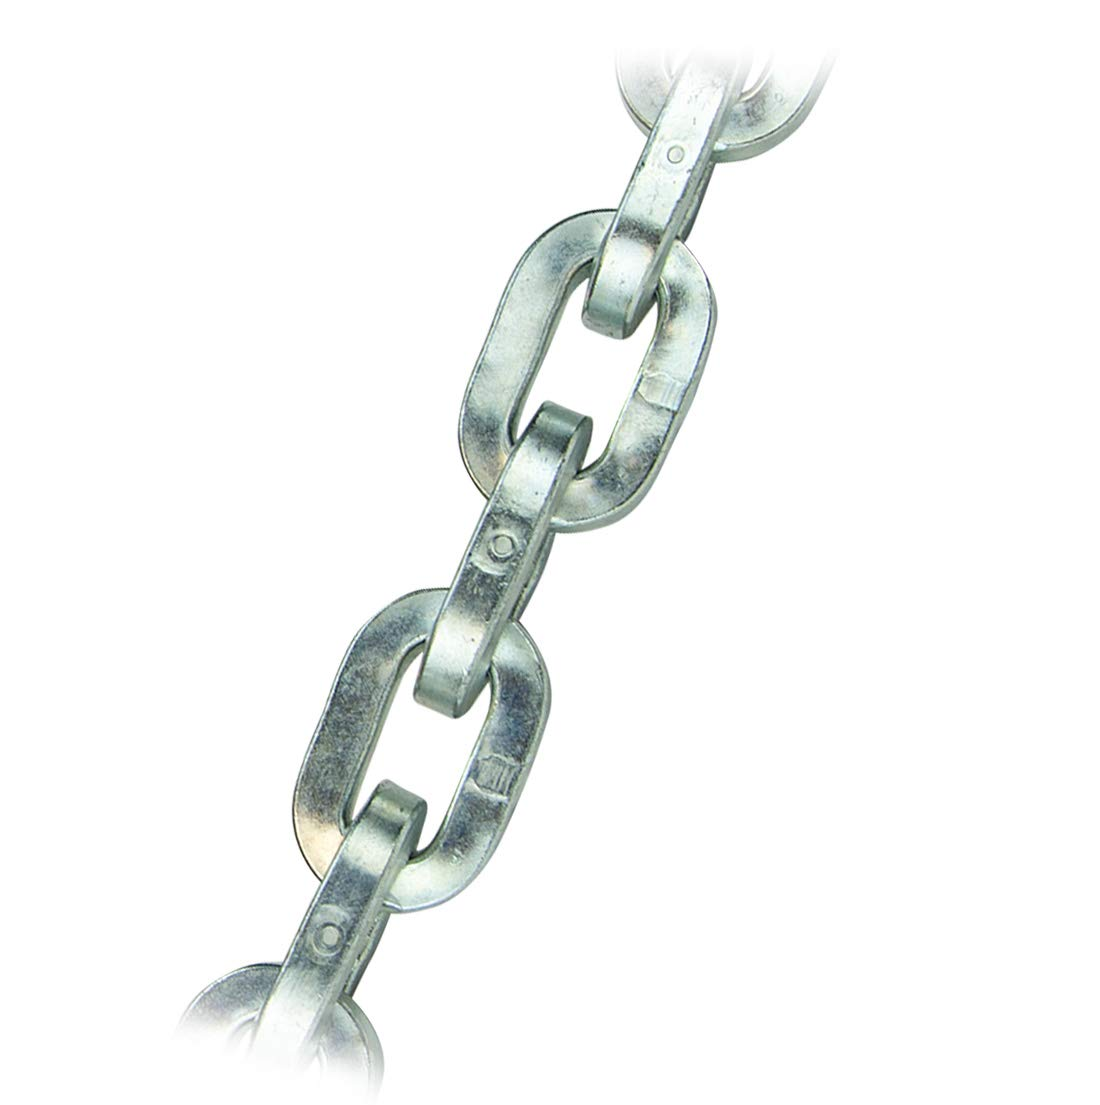 Vulcan Premium Case-Hardened Security Chain (3/8'' x 9' Chain), Nearly Impossible To Defeat, Cannot Be Cut With Bolt Cutters Or Hand Tools by Vulcan